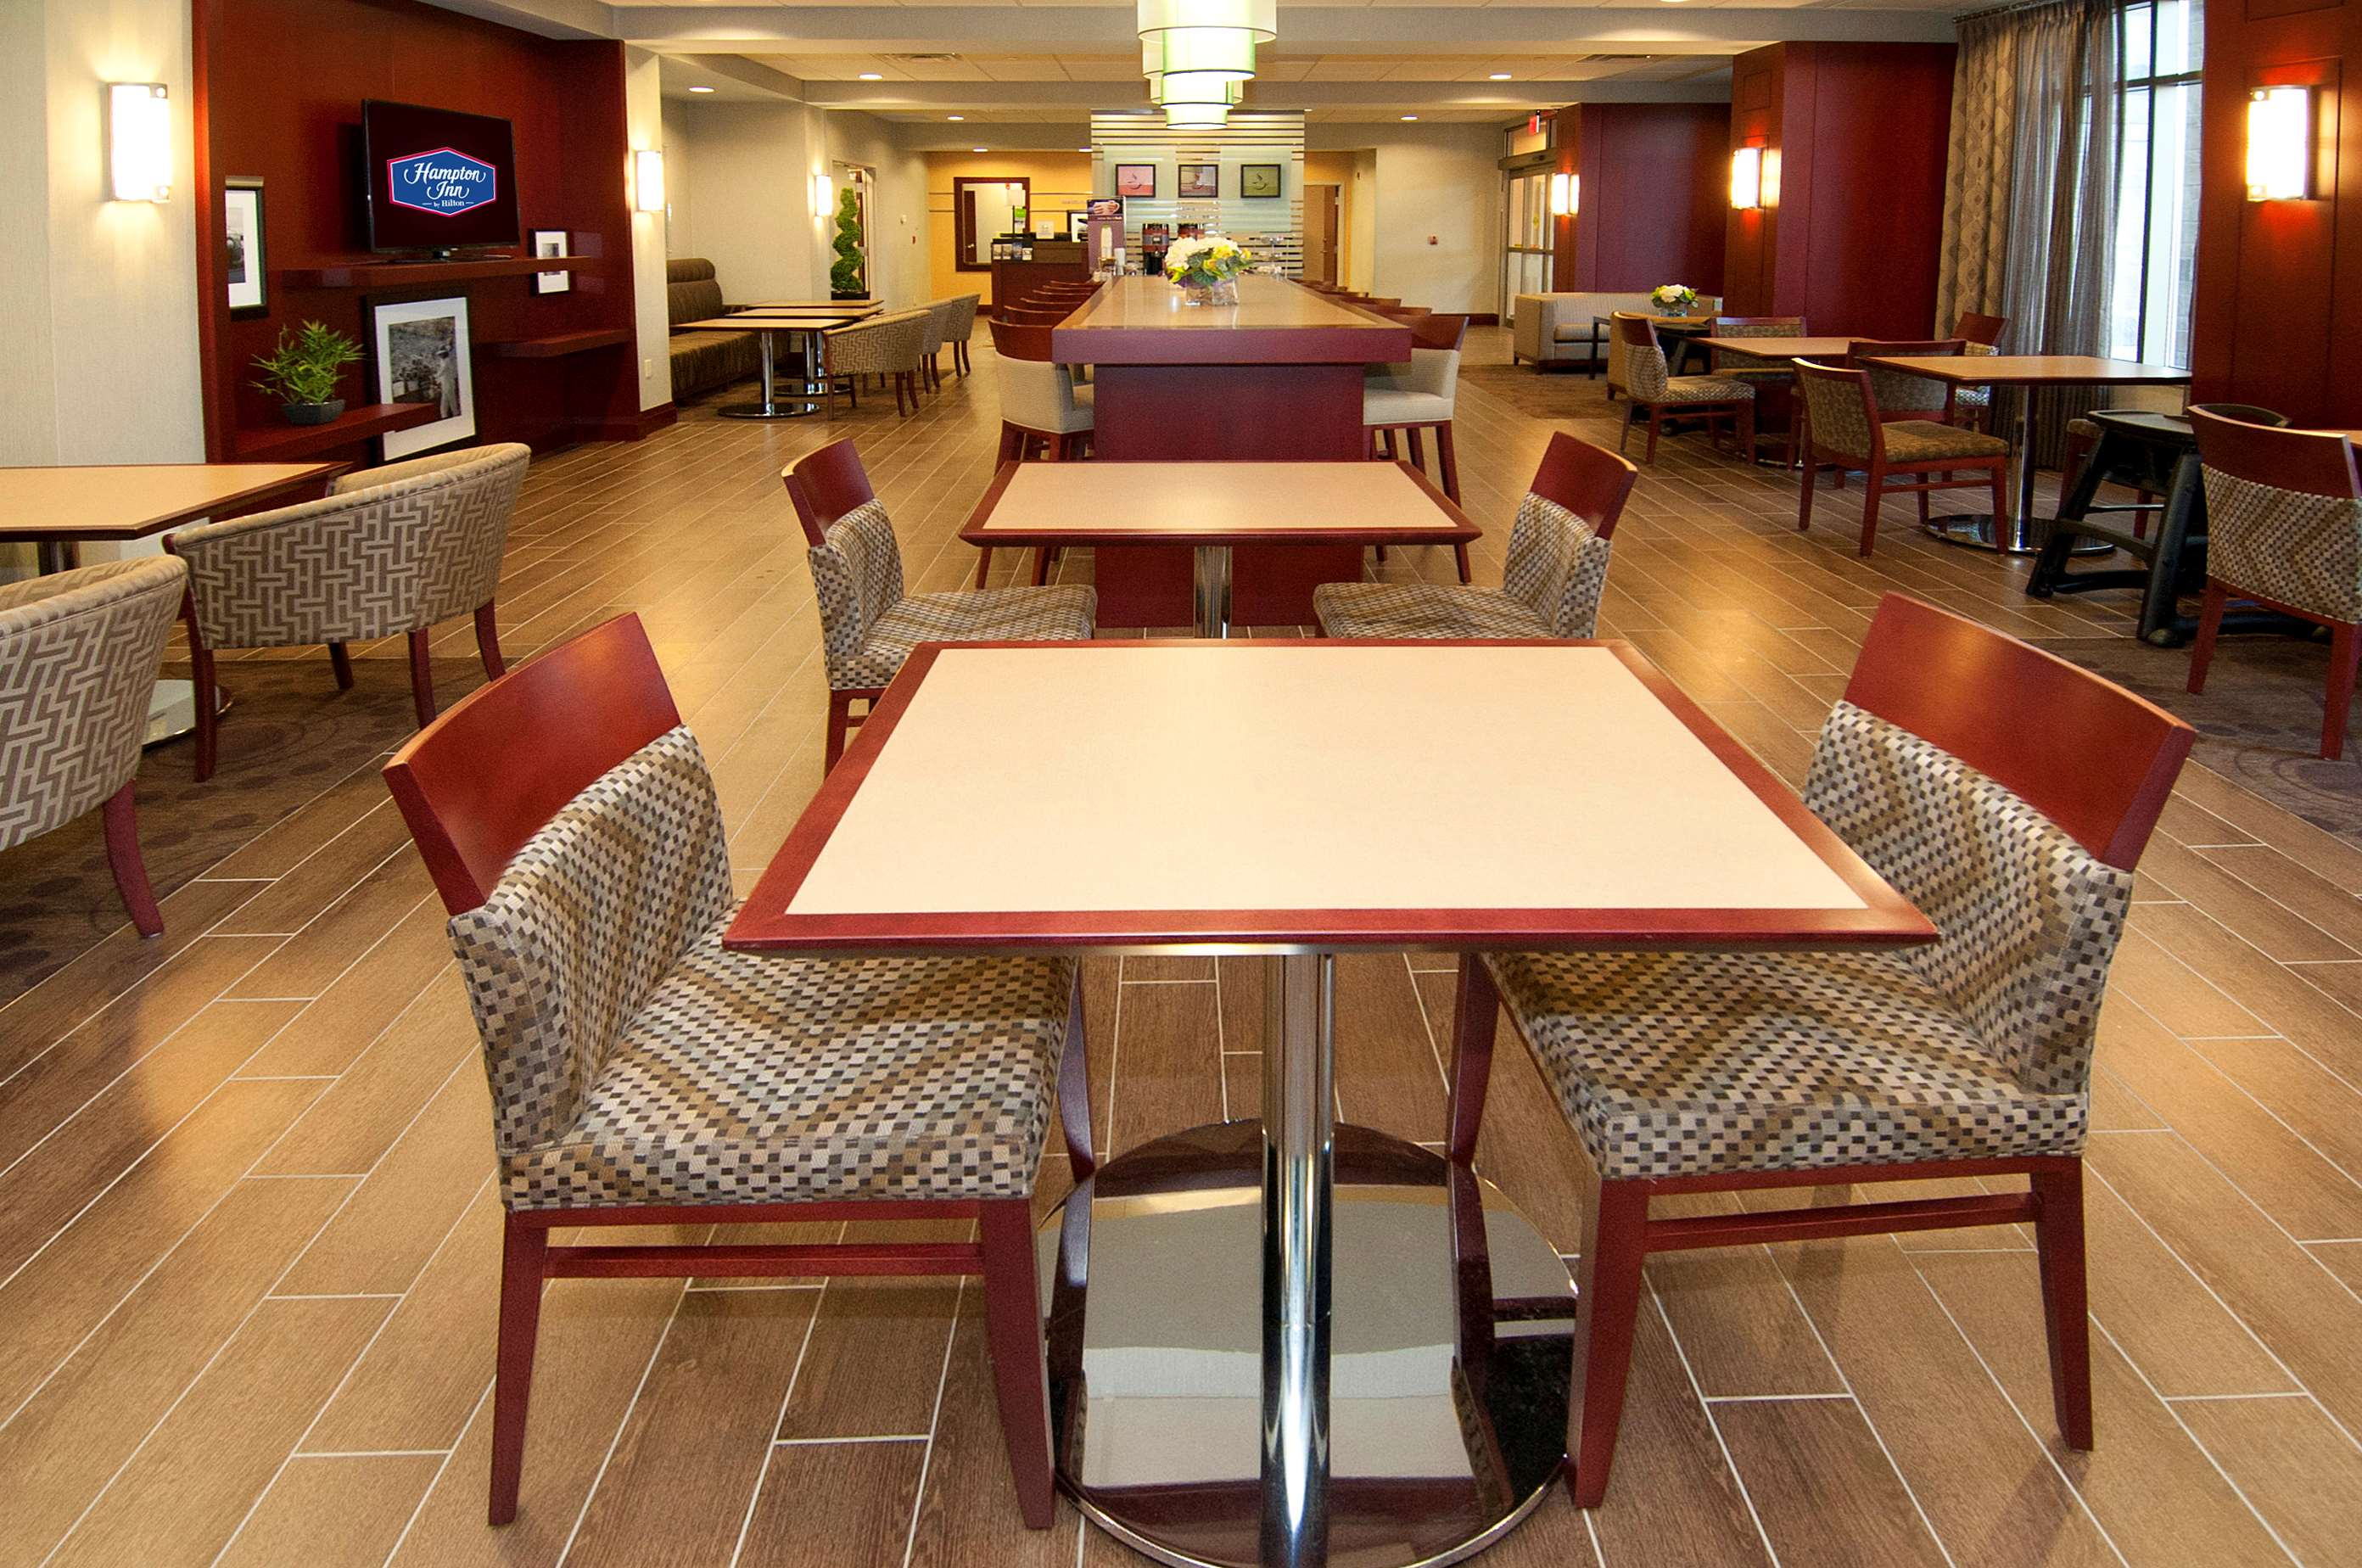 Hampton Inn by Hilton Brampton Toronto in Brampton: Restaurant